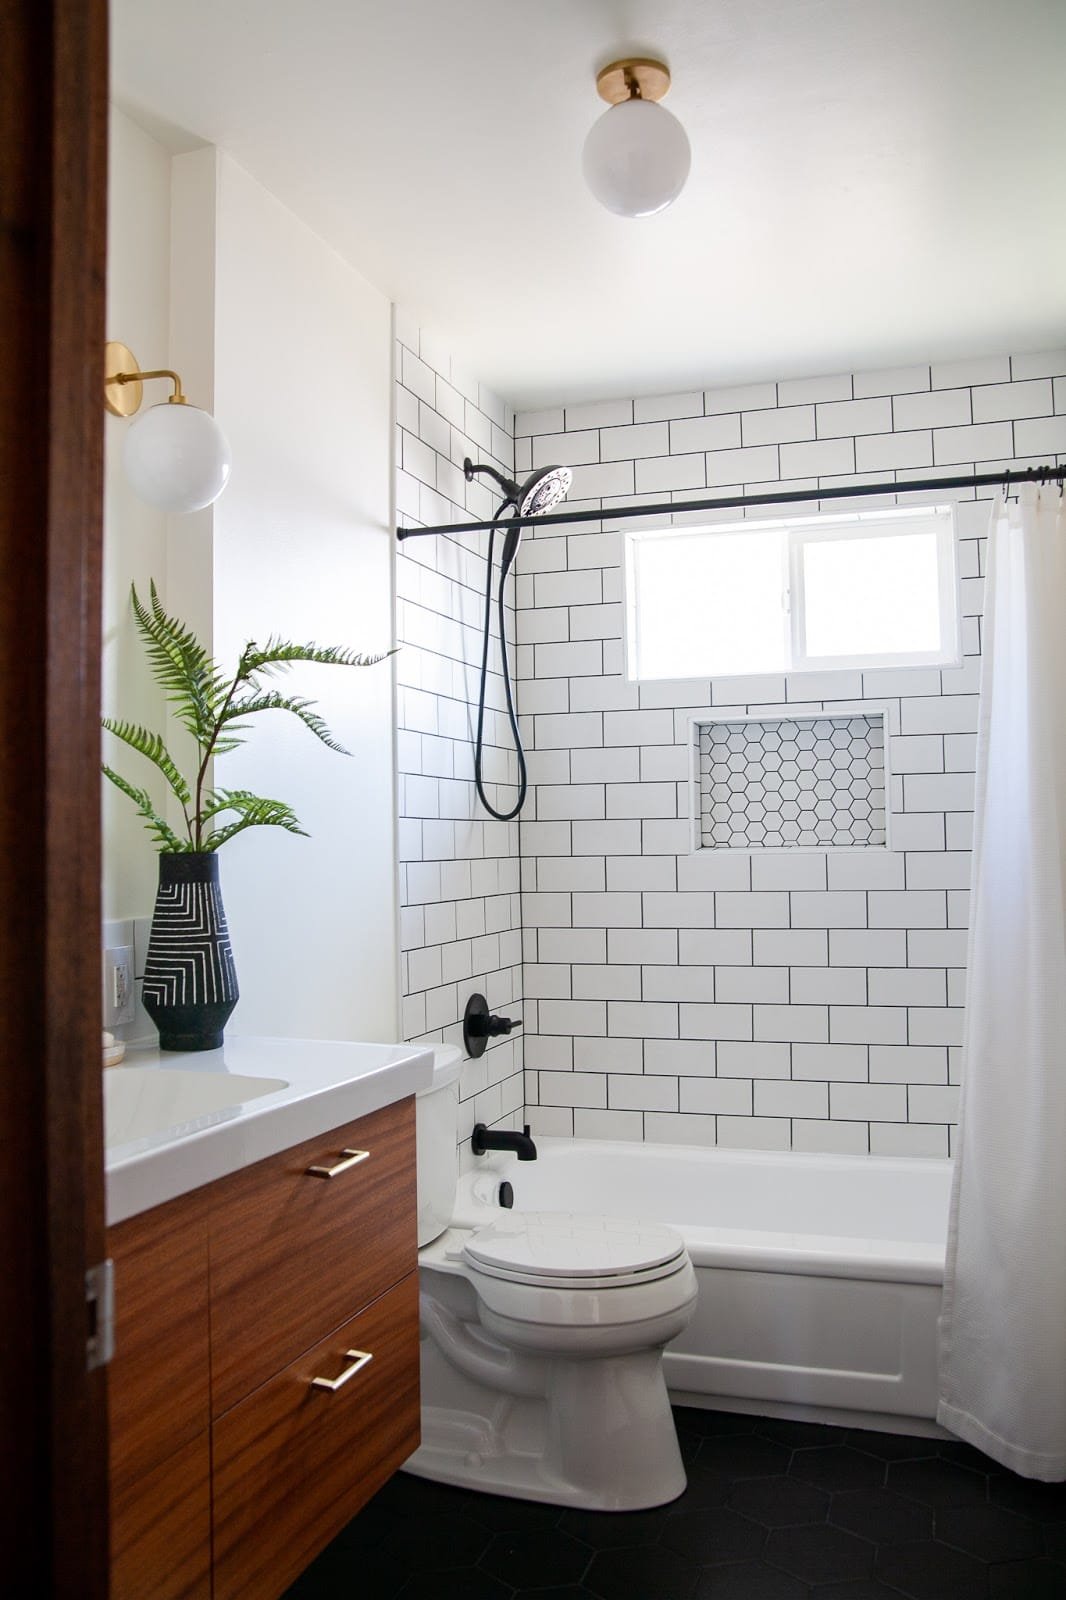 Novice DIYers tackle a full bathroom reno